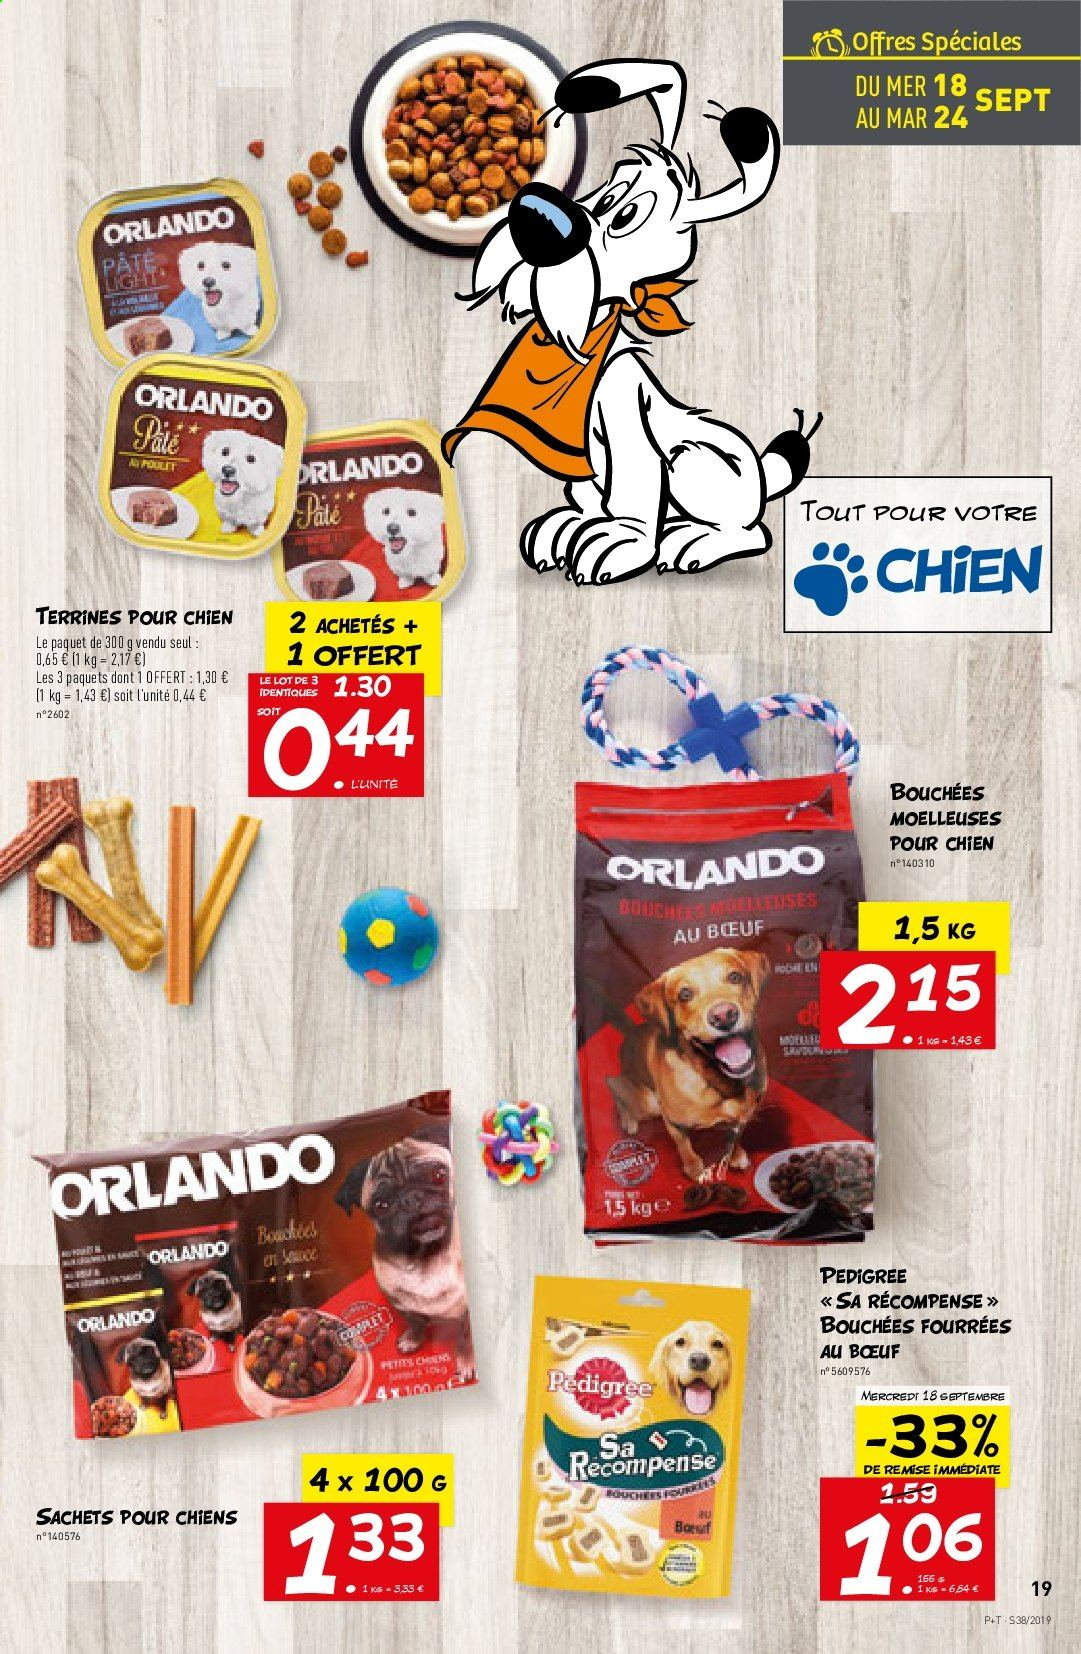 Catalogue Lidl - 18.09.2019 - 24.09.2019. Page 19.